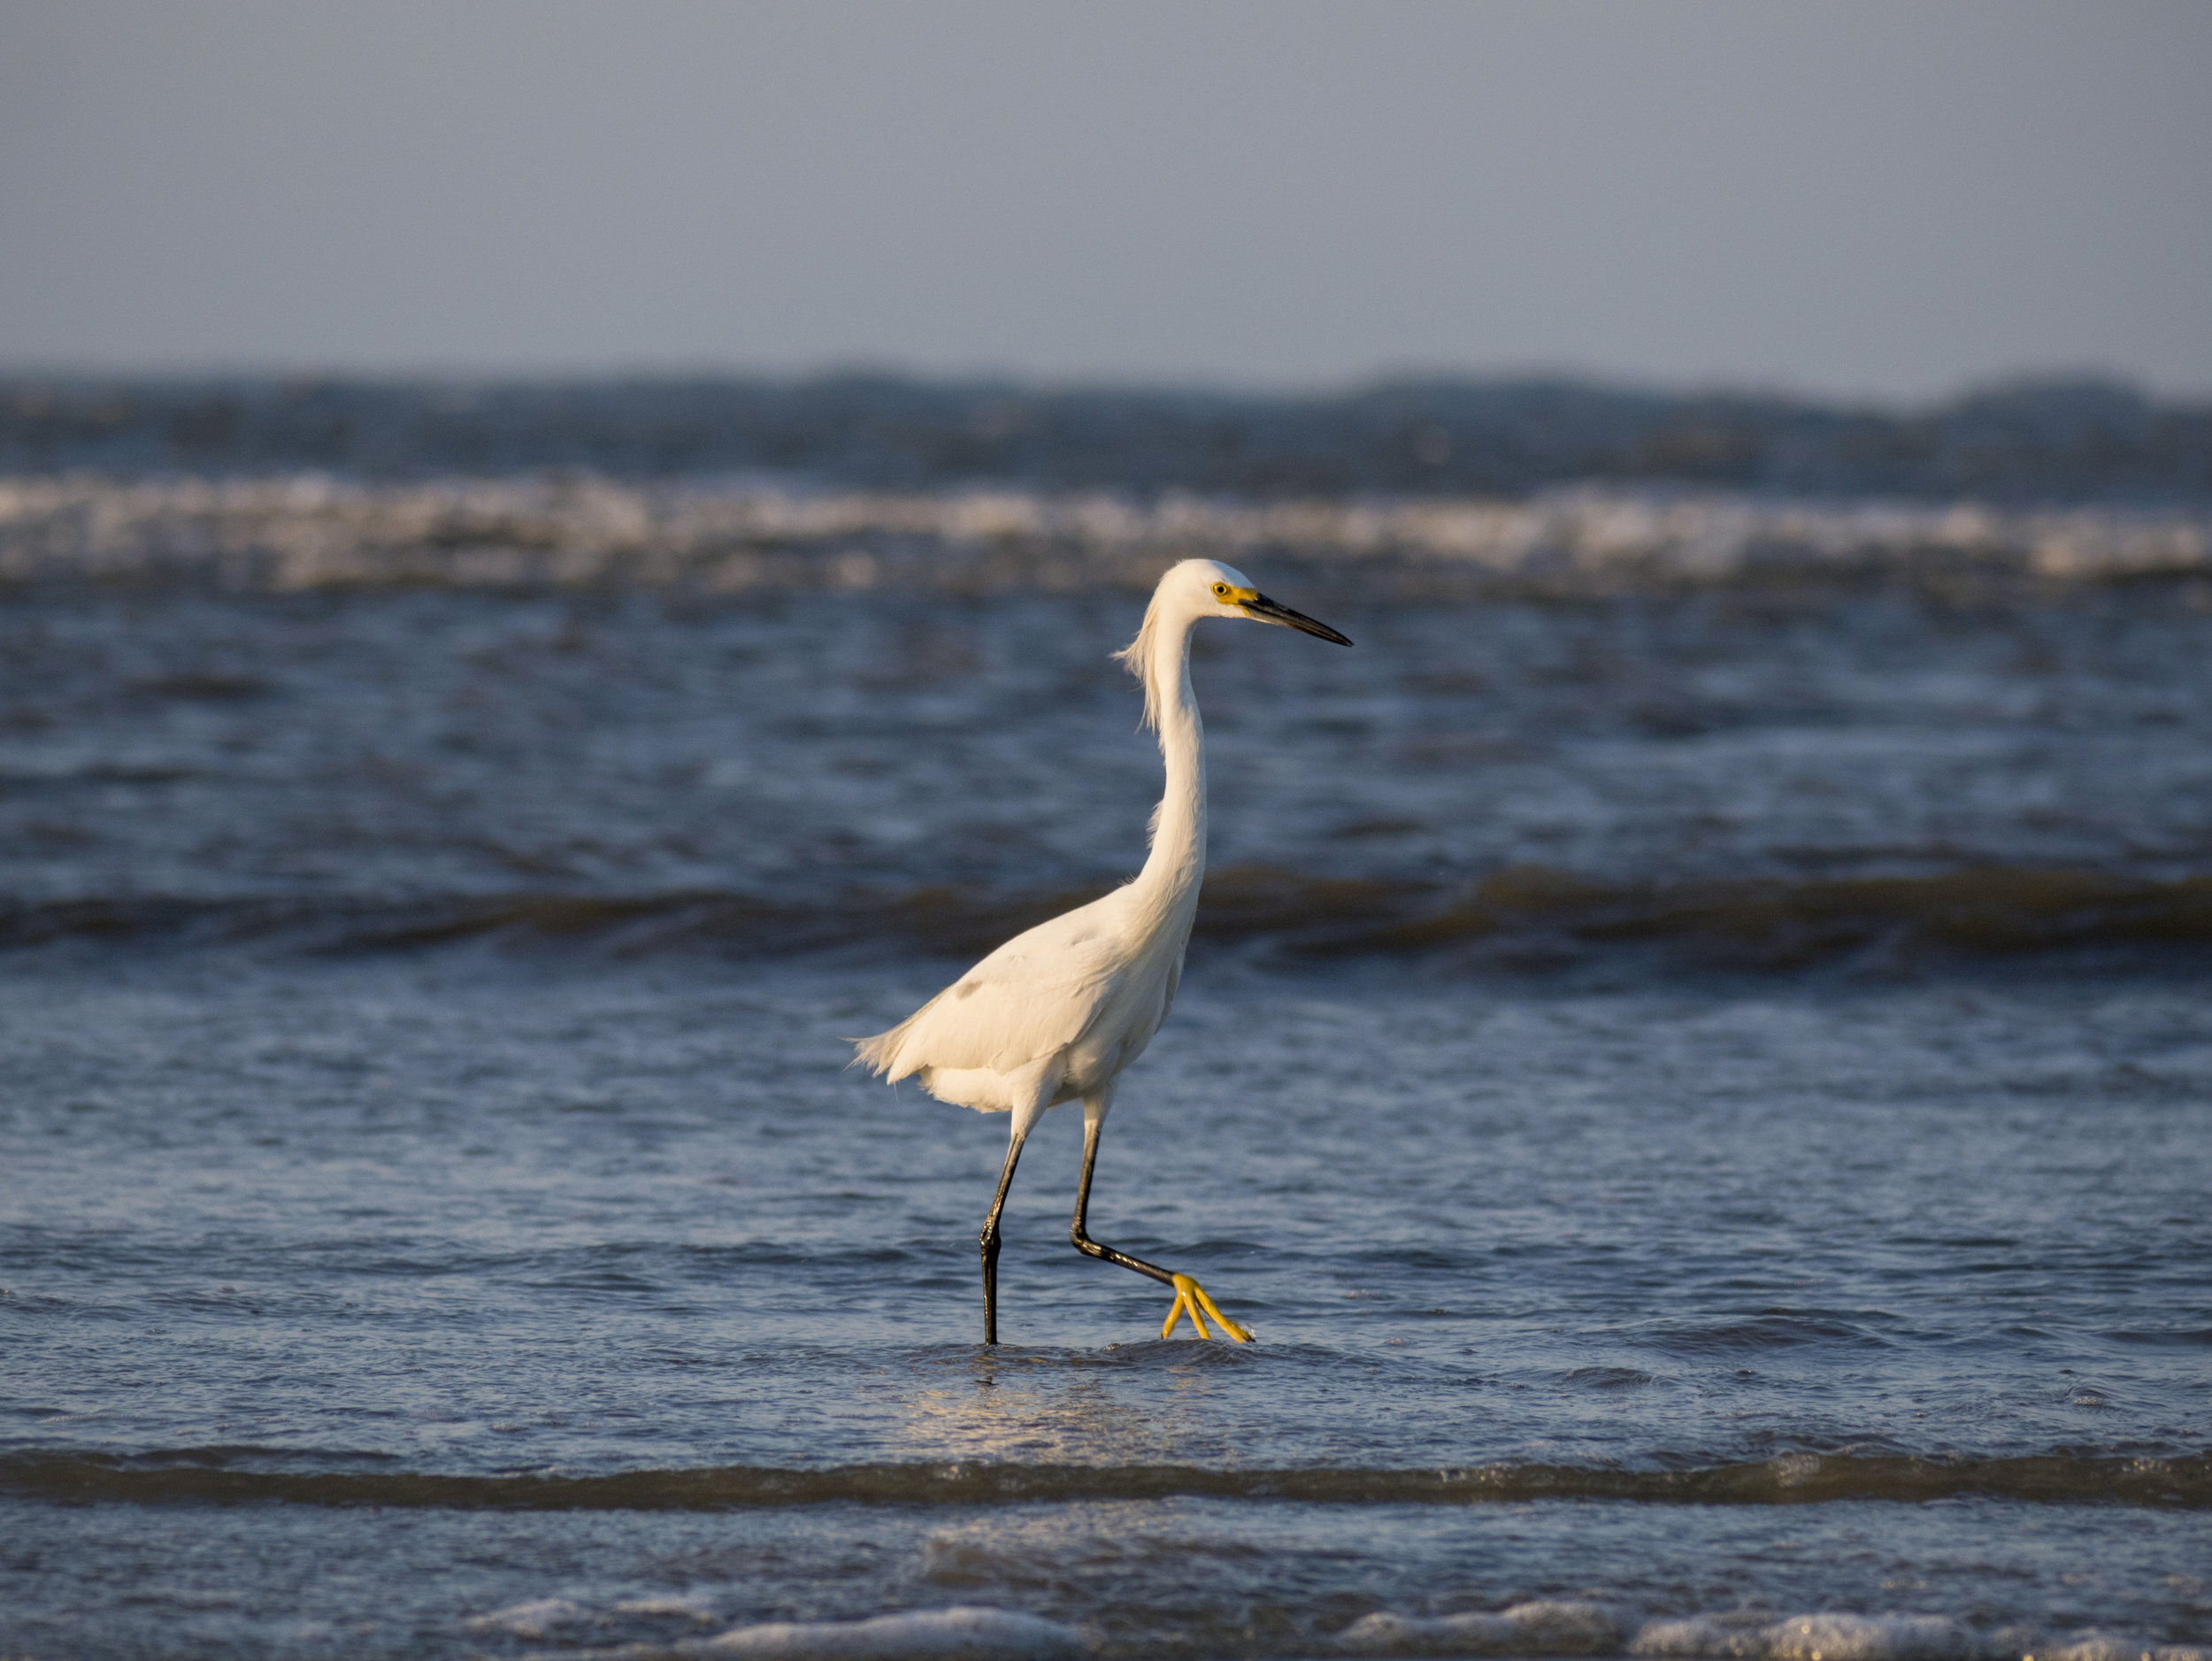 A Snowy Egret searching for food at hightide